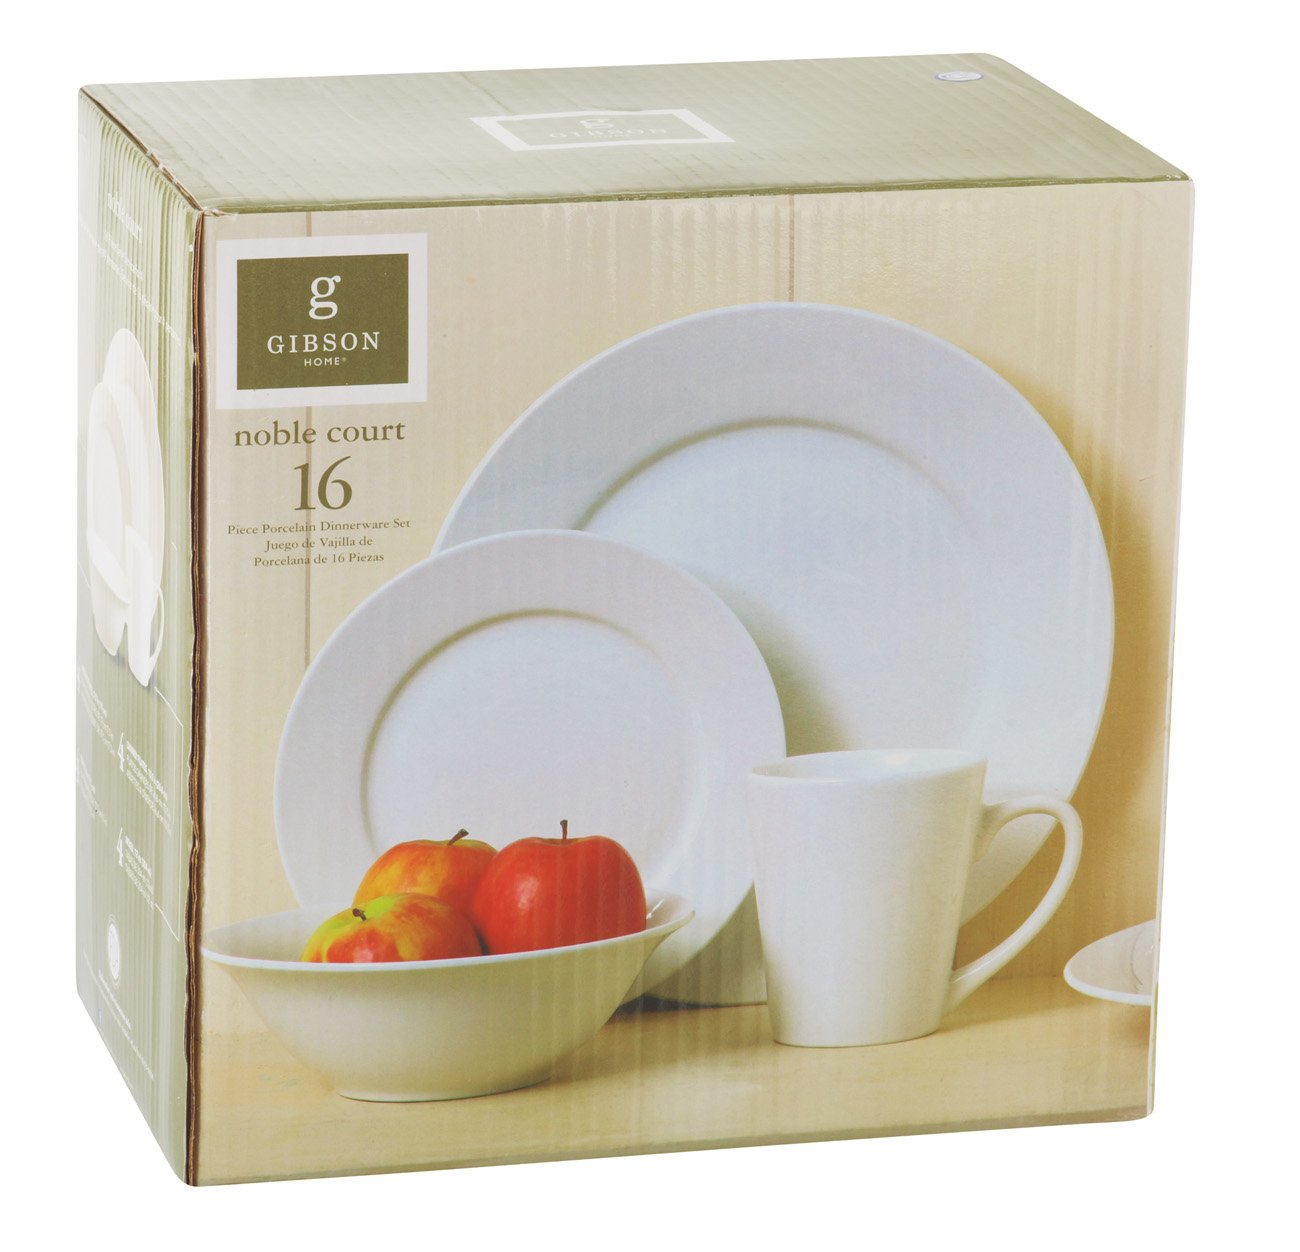 sc 1 st  HEB.com & Gibson Nobel Court 16 Piece Dinnerware Set - Shop Dishes at HEB